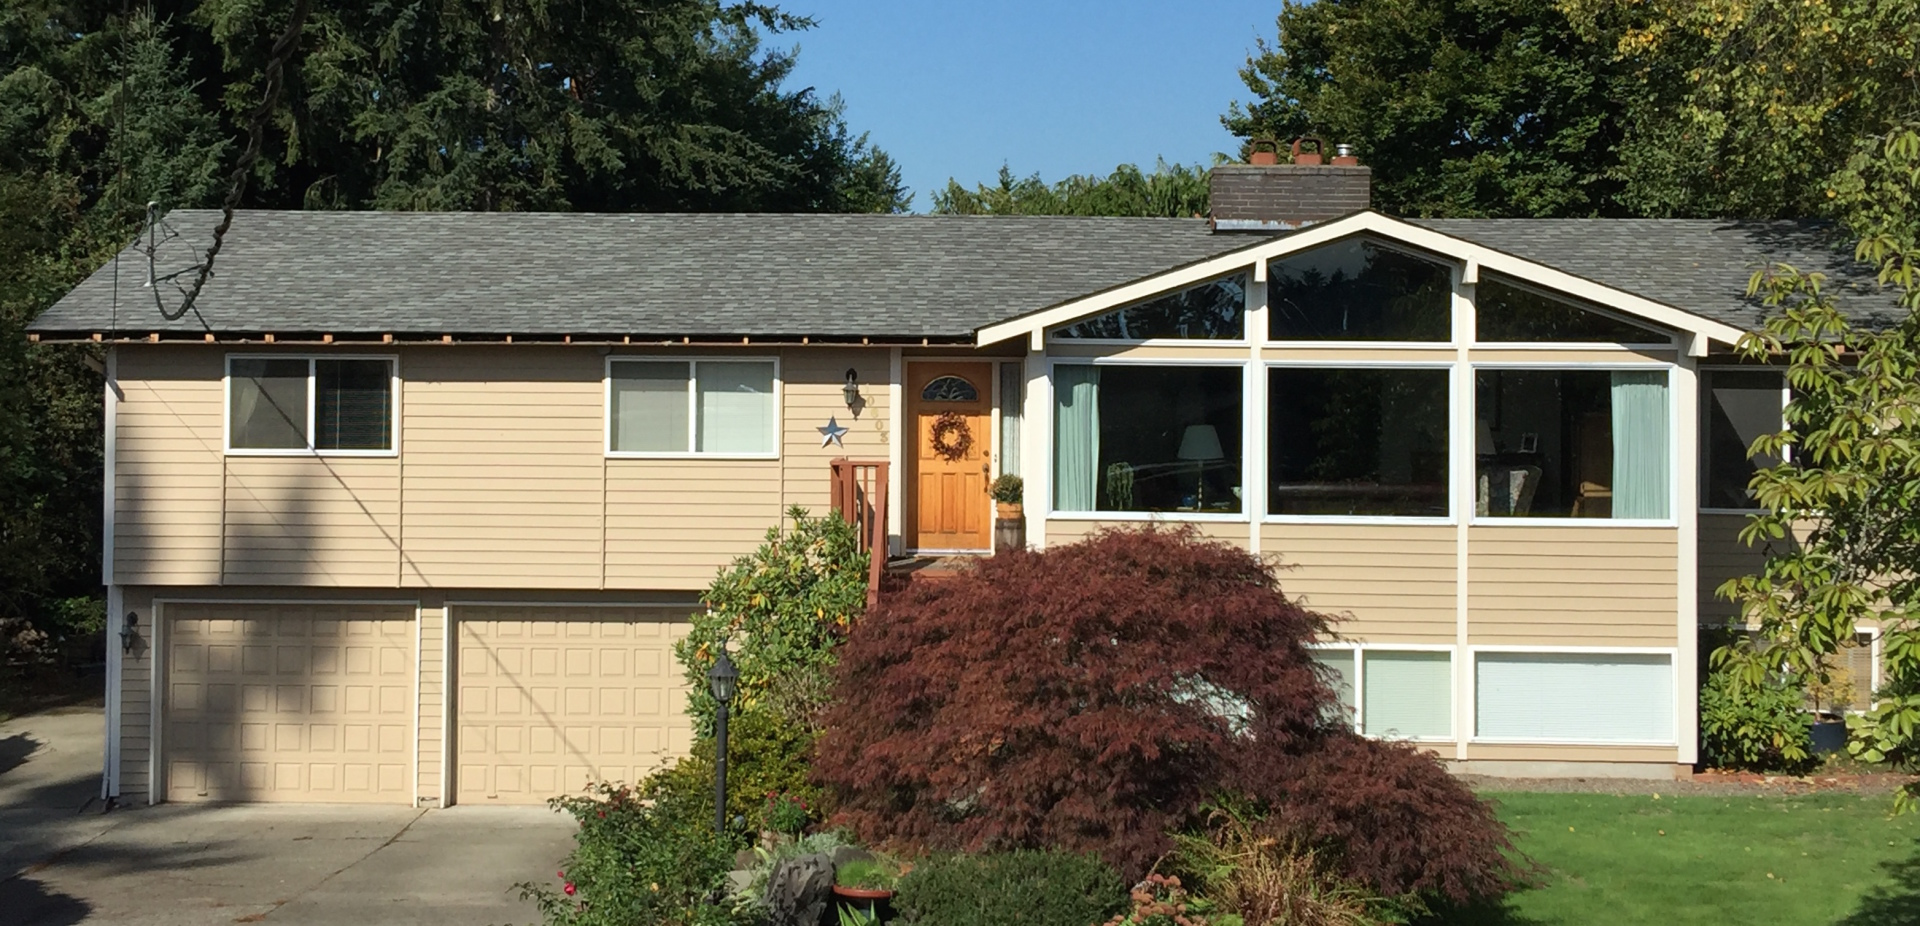 residential roofing contractor in Edgewood, WA